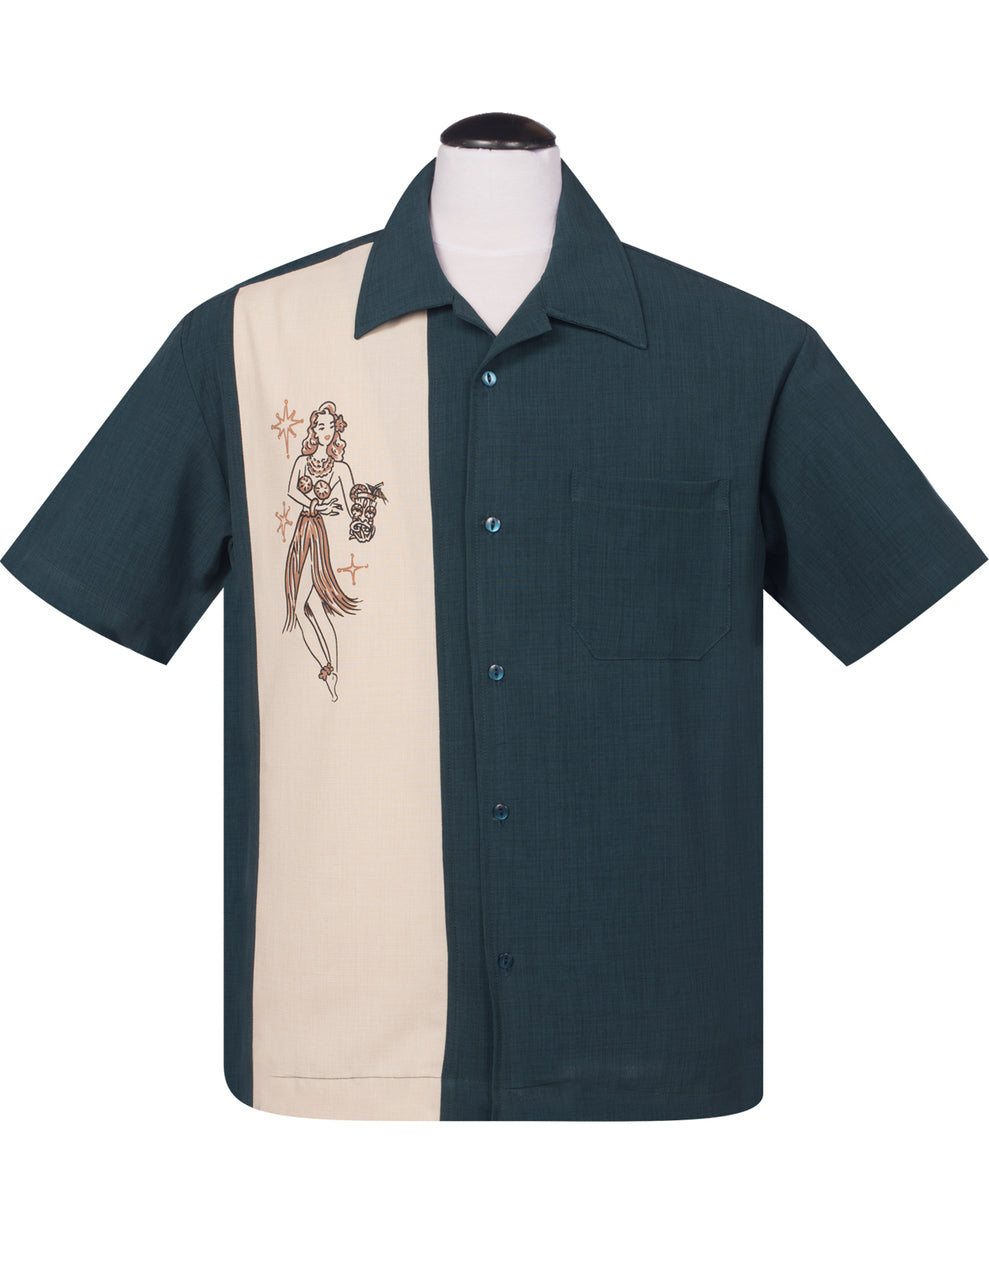 Steady Mai Tai Mirage Bowling Shirt - Teal